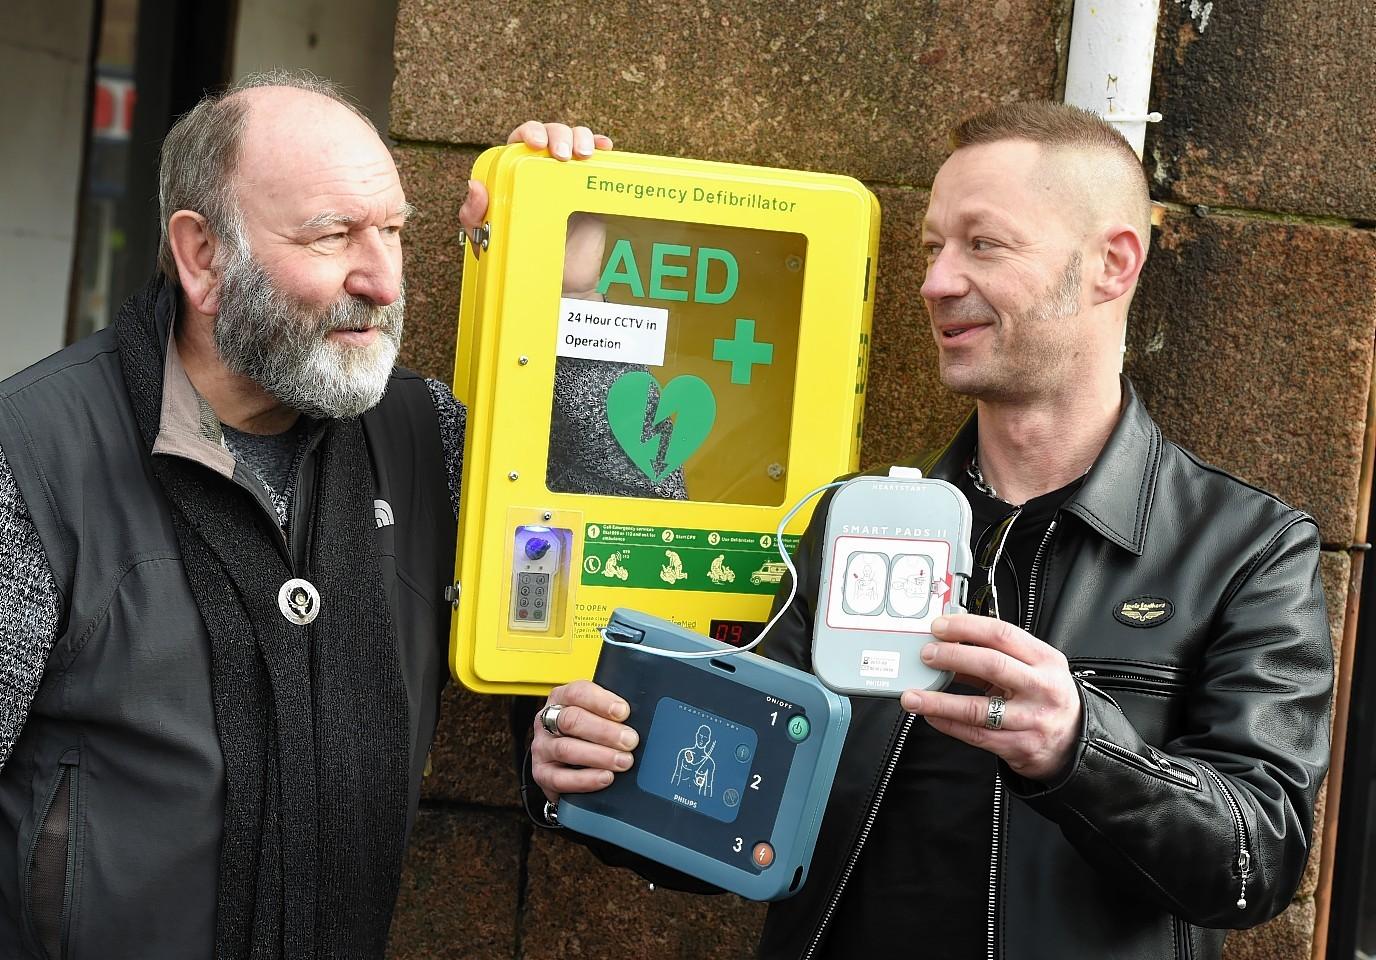 (from left) Stonehaven and District Community Council's Phil Mills-Bishop with John Trudgill from Baker Hughes who have donated four defibrillators to Stonehaven, one of which is now operational in the Market Square.